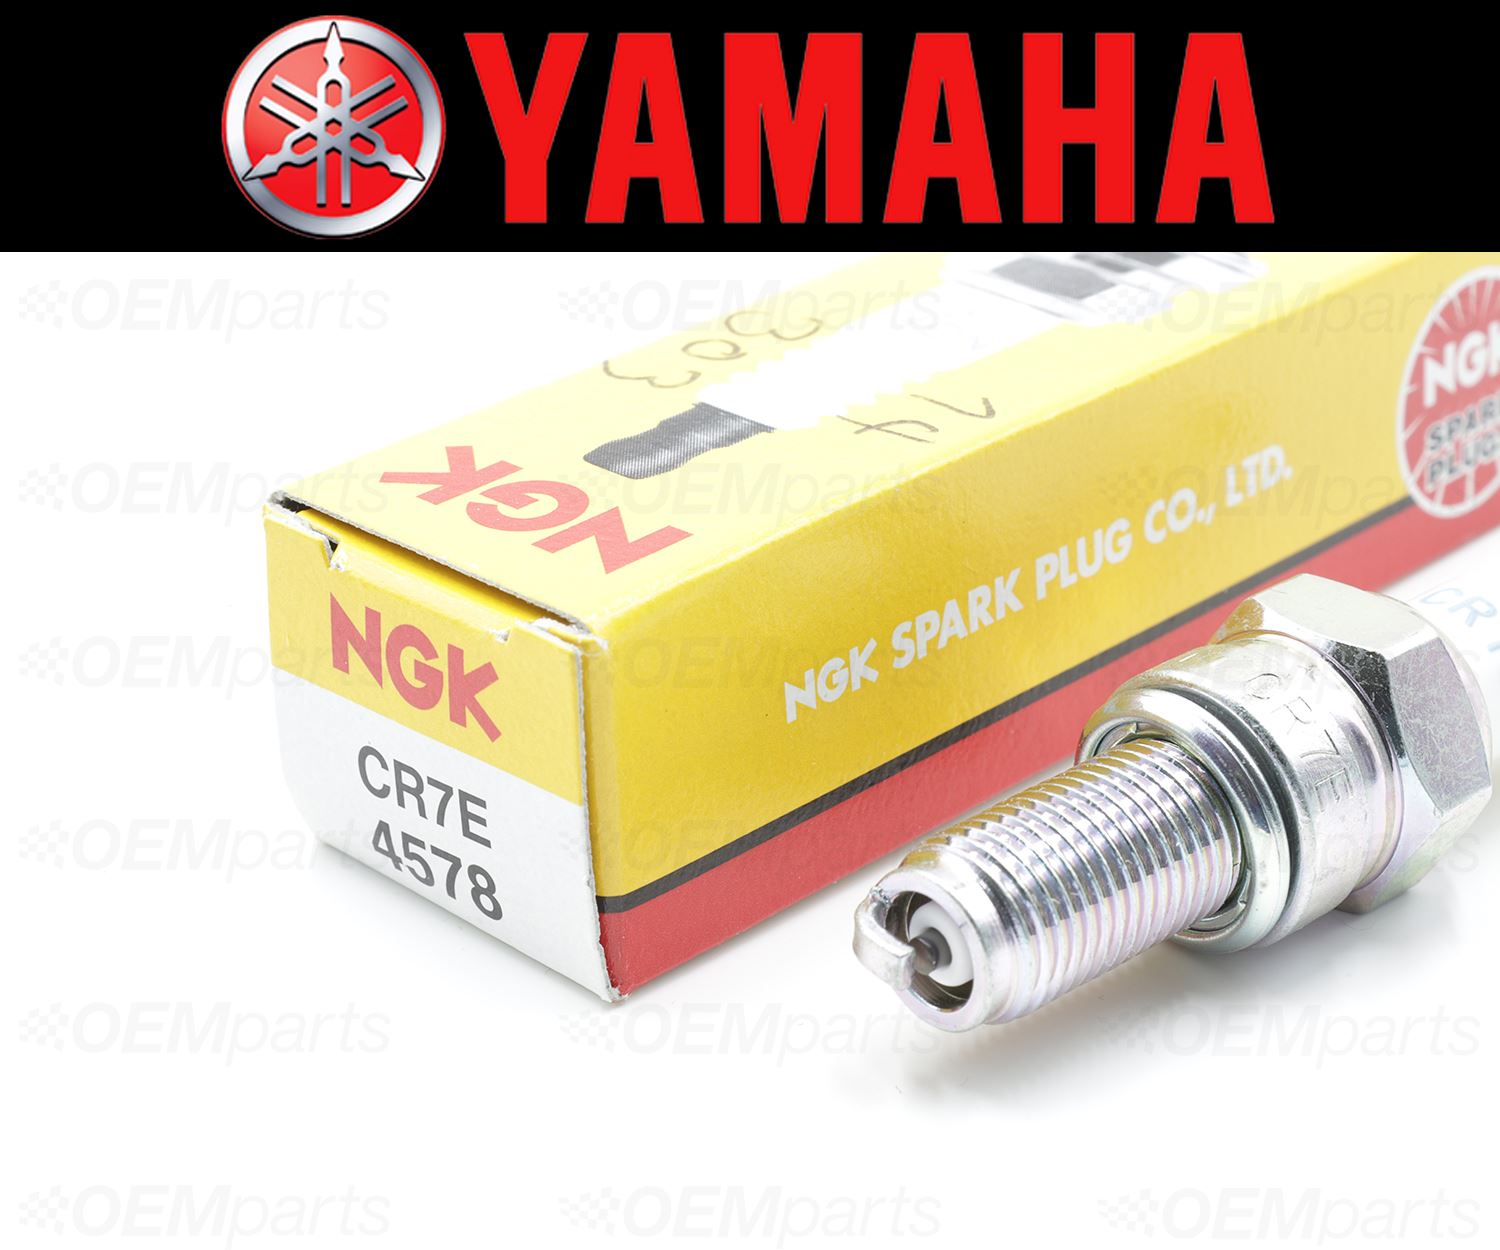 Special Type Spark Plug 2006 Yamaha XC50 Vino 50 Classic Scooter